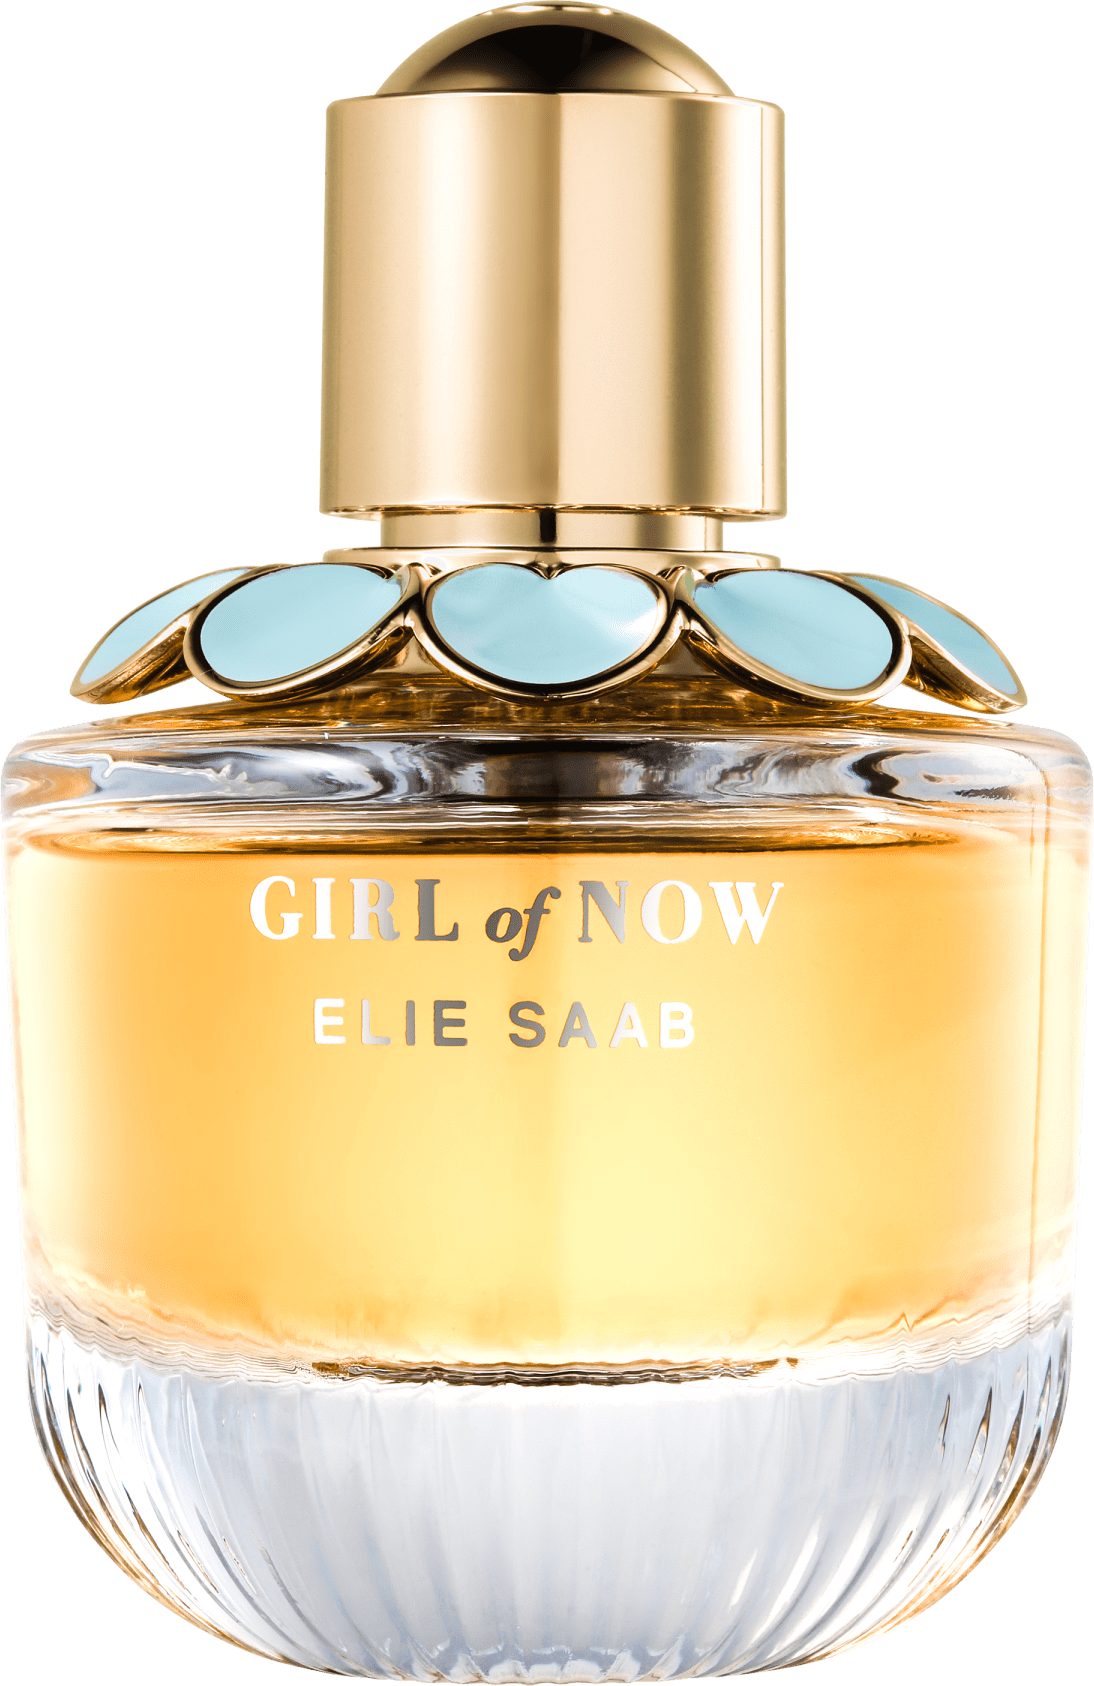 Girl of Now Elie Saab Perfume Feminino | Beleza na Web